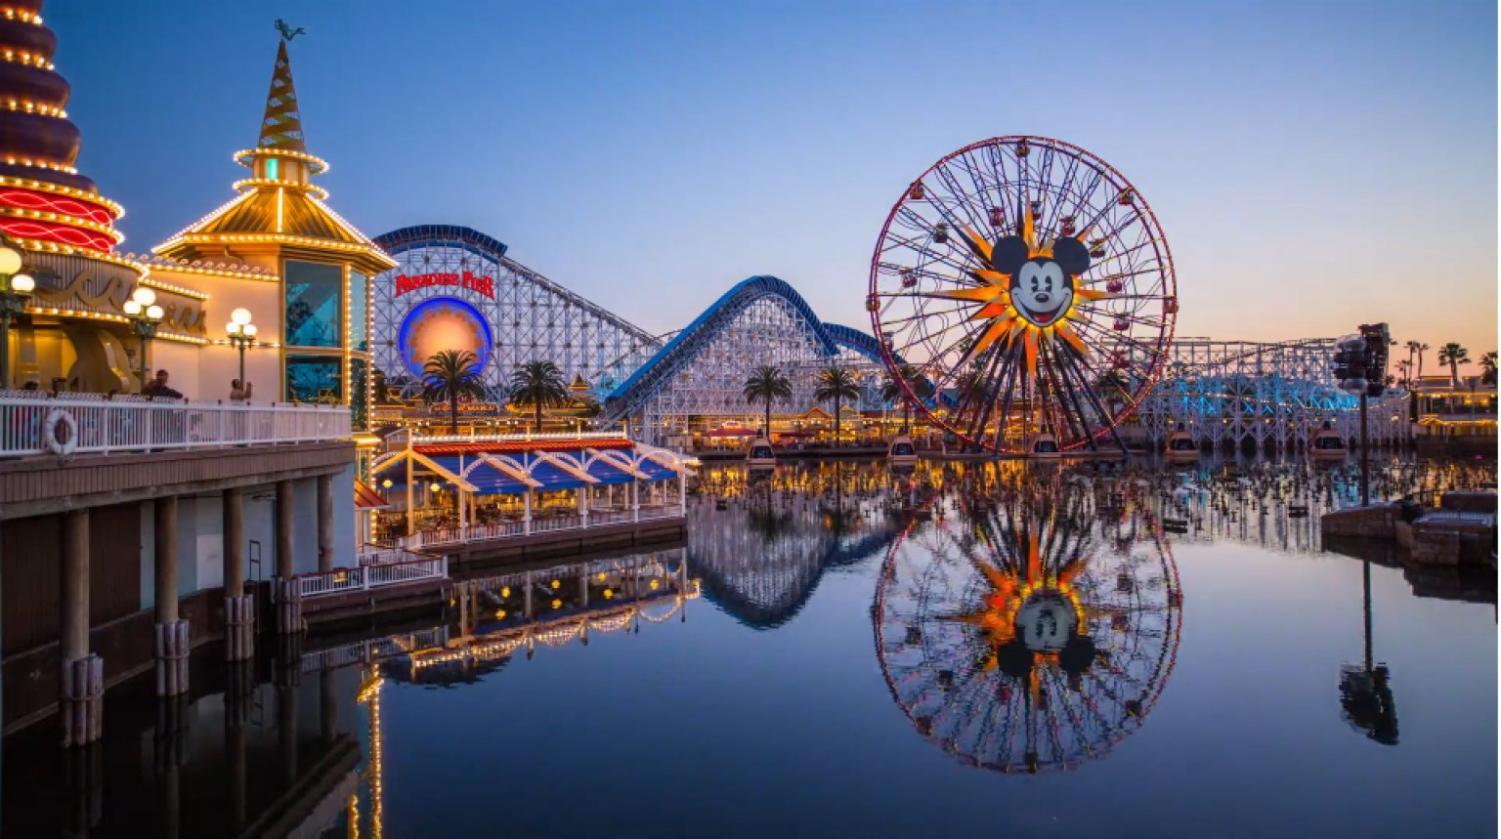 Paradise Pier is being remodeled into Pixar Pier, one of the many reasons for rising ticket prices.